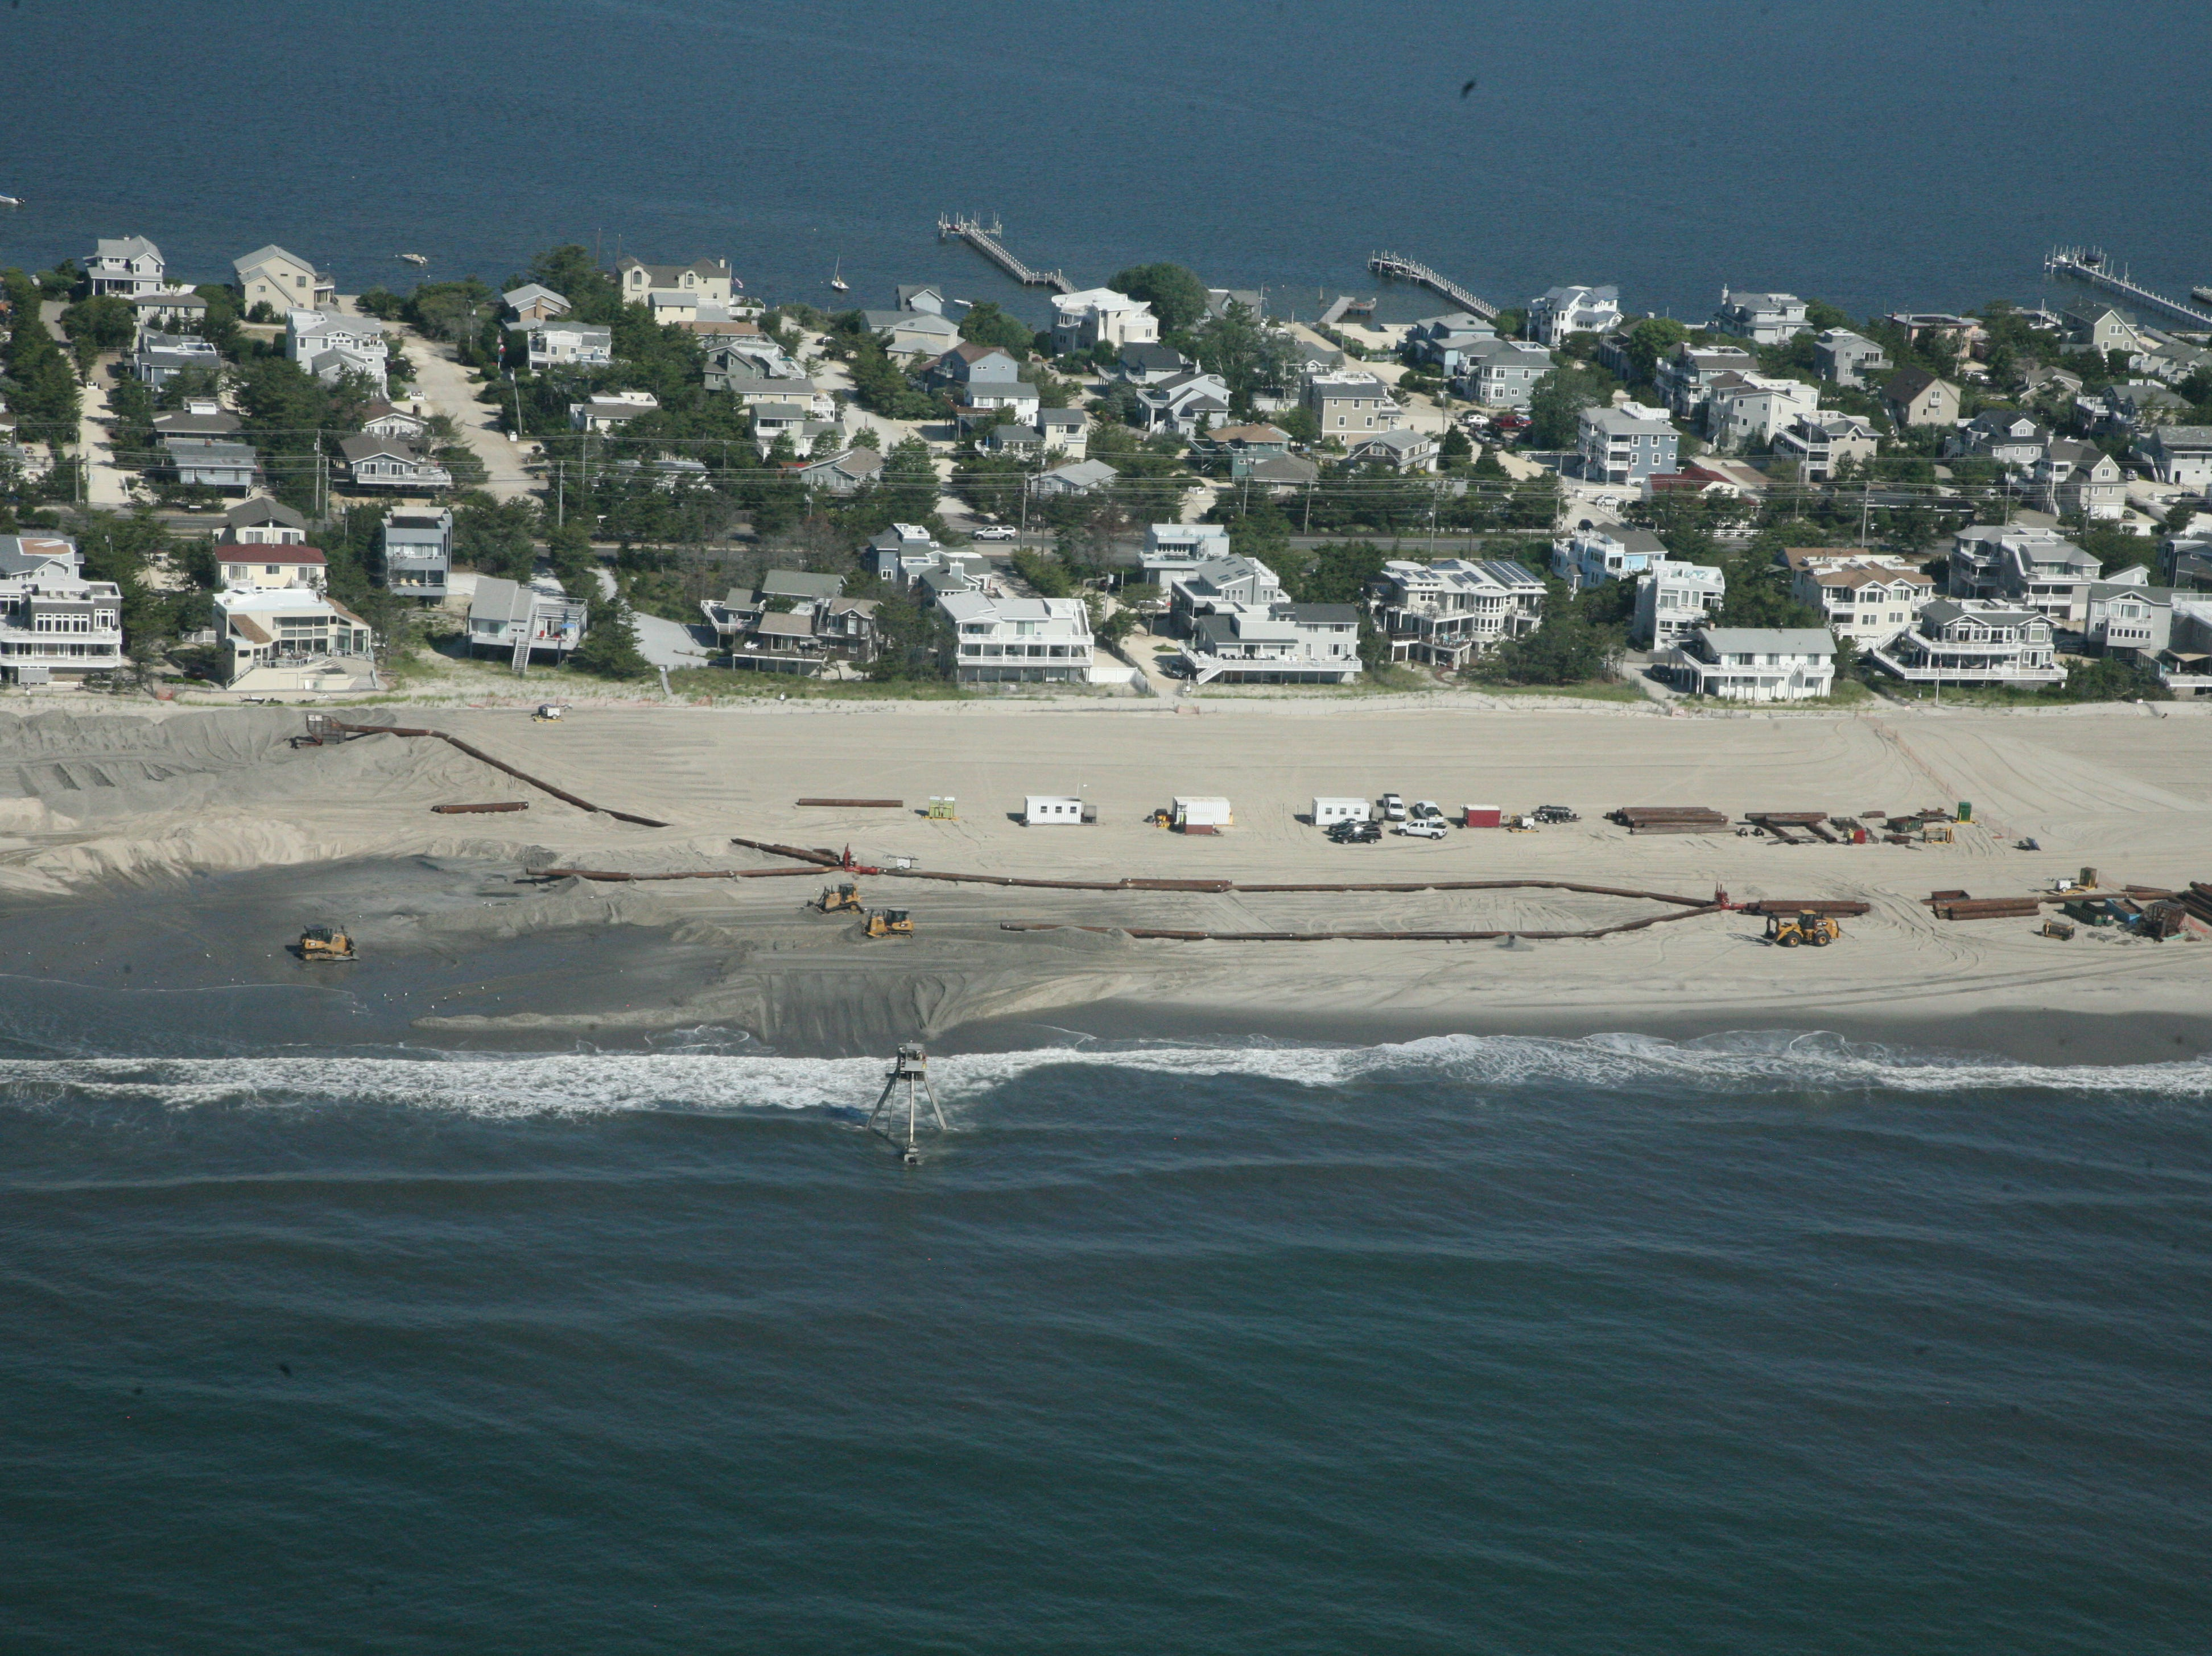 Beach replenishment on Long Beach Island